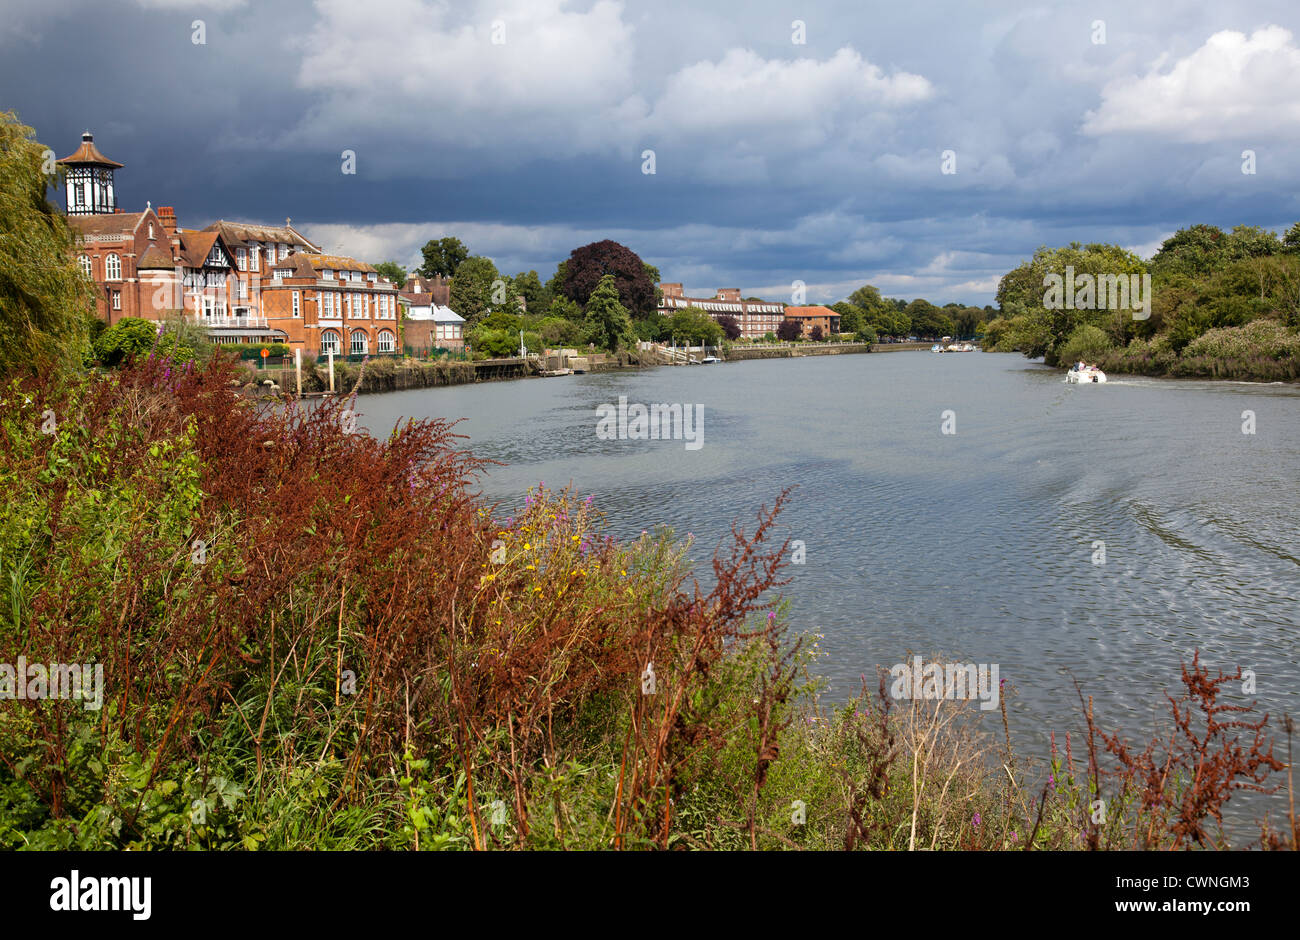 View down Thames from Radnor Gardens in Strawberry Hill with Radnor House Independent School on Left - Richmond - Stock Image